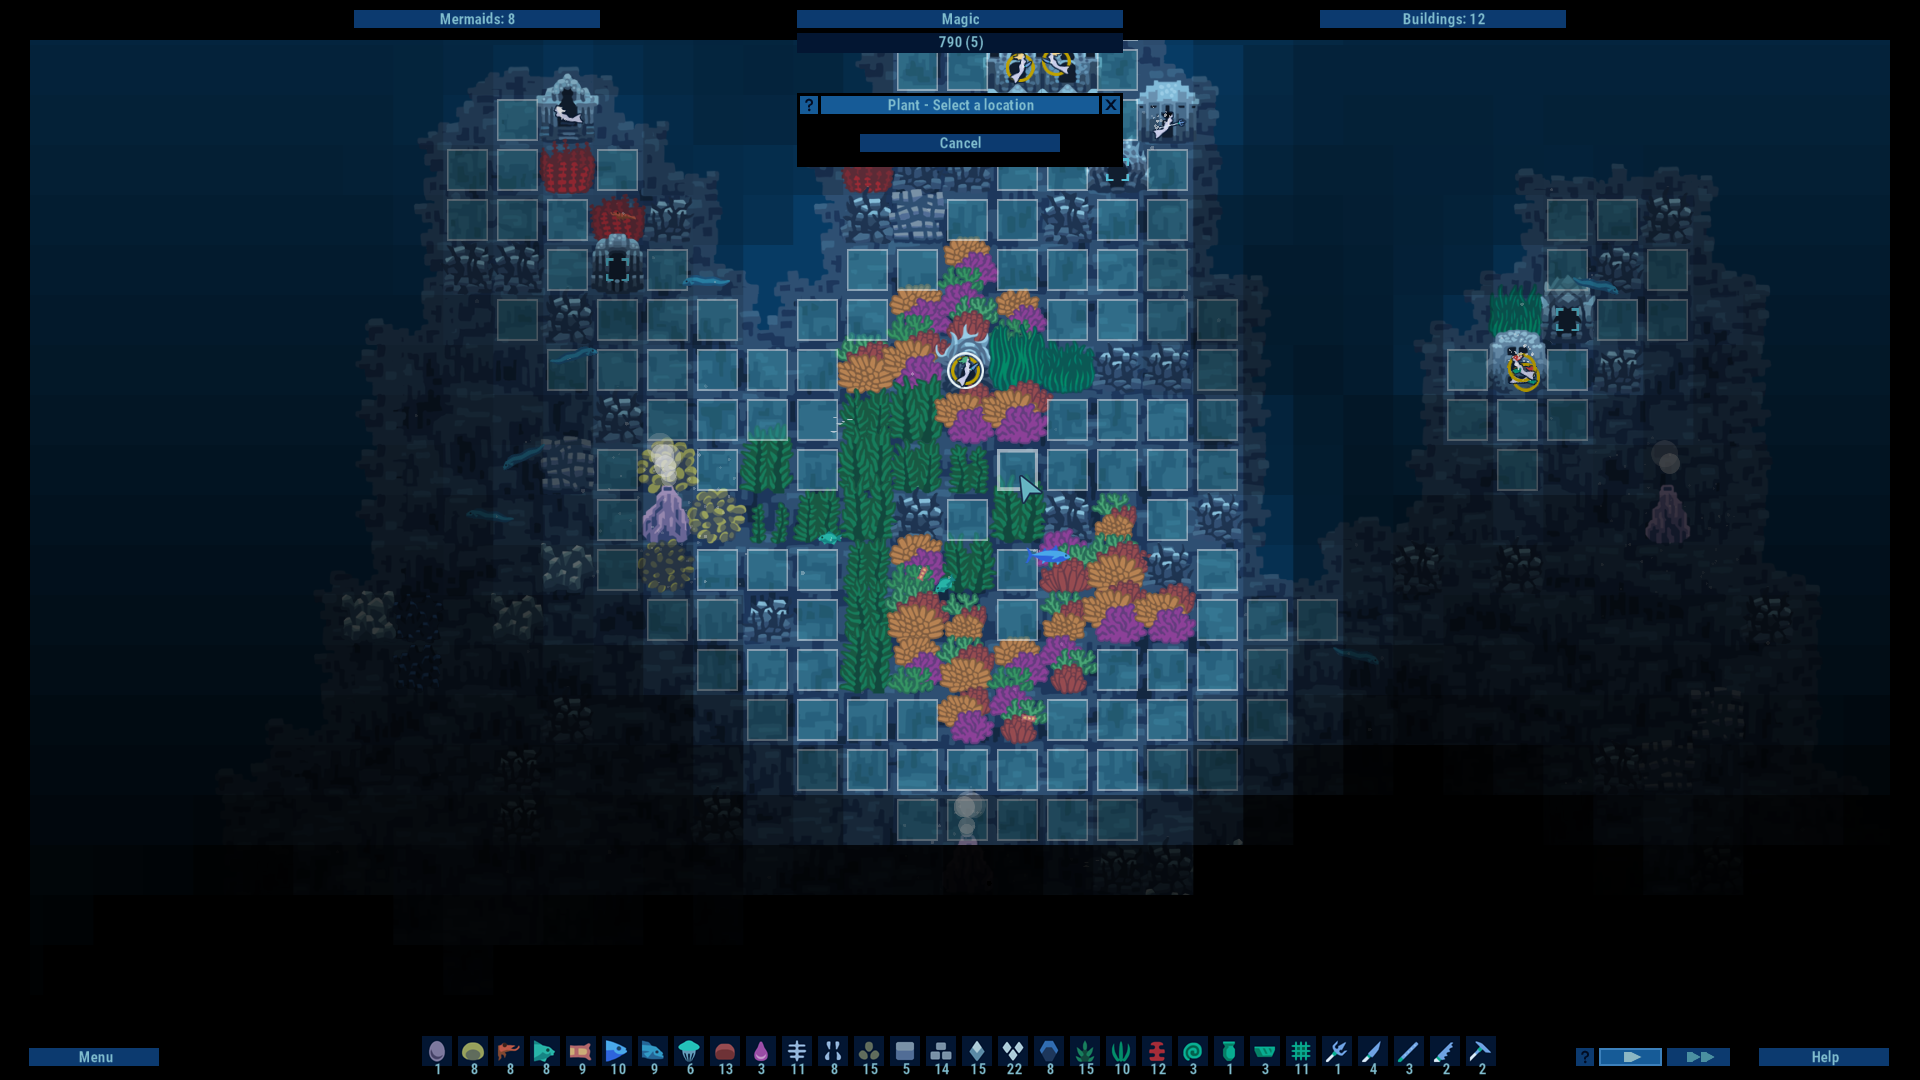 mermaidcolony_screenshot_2.png